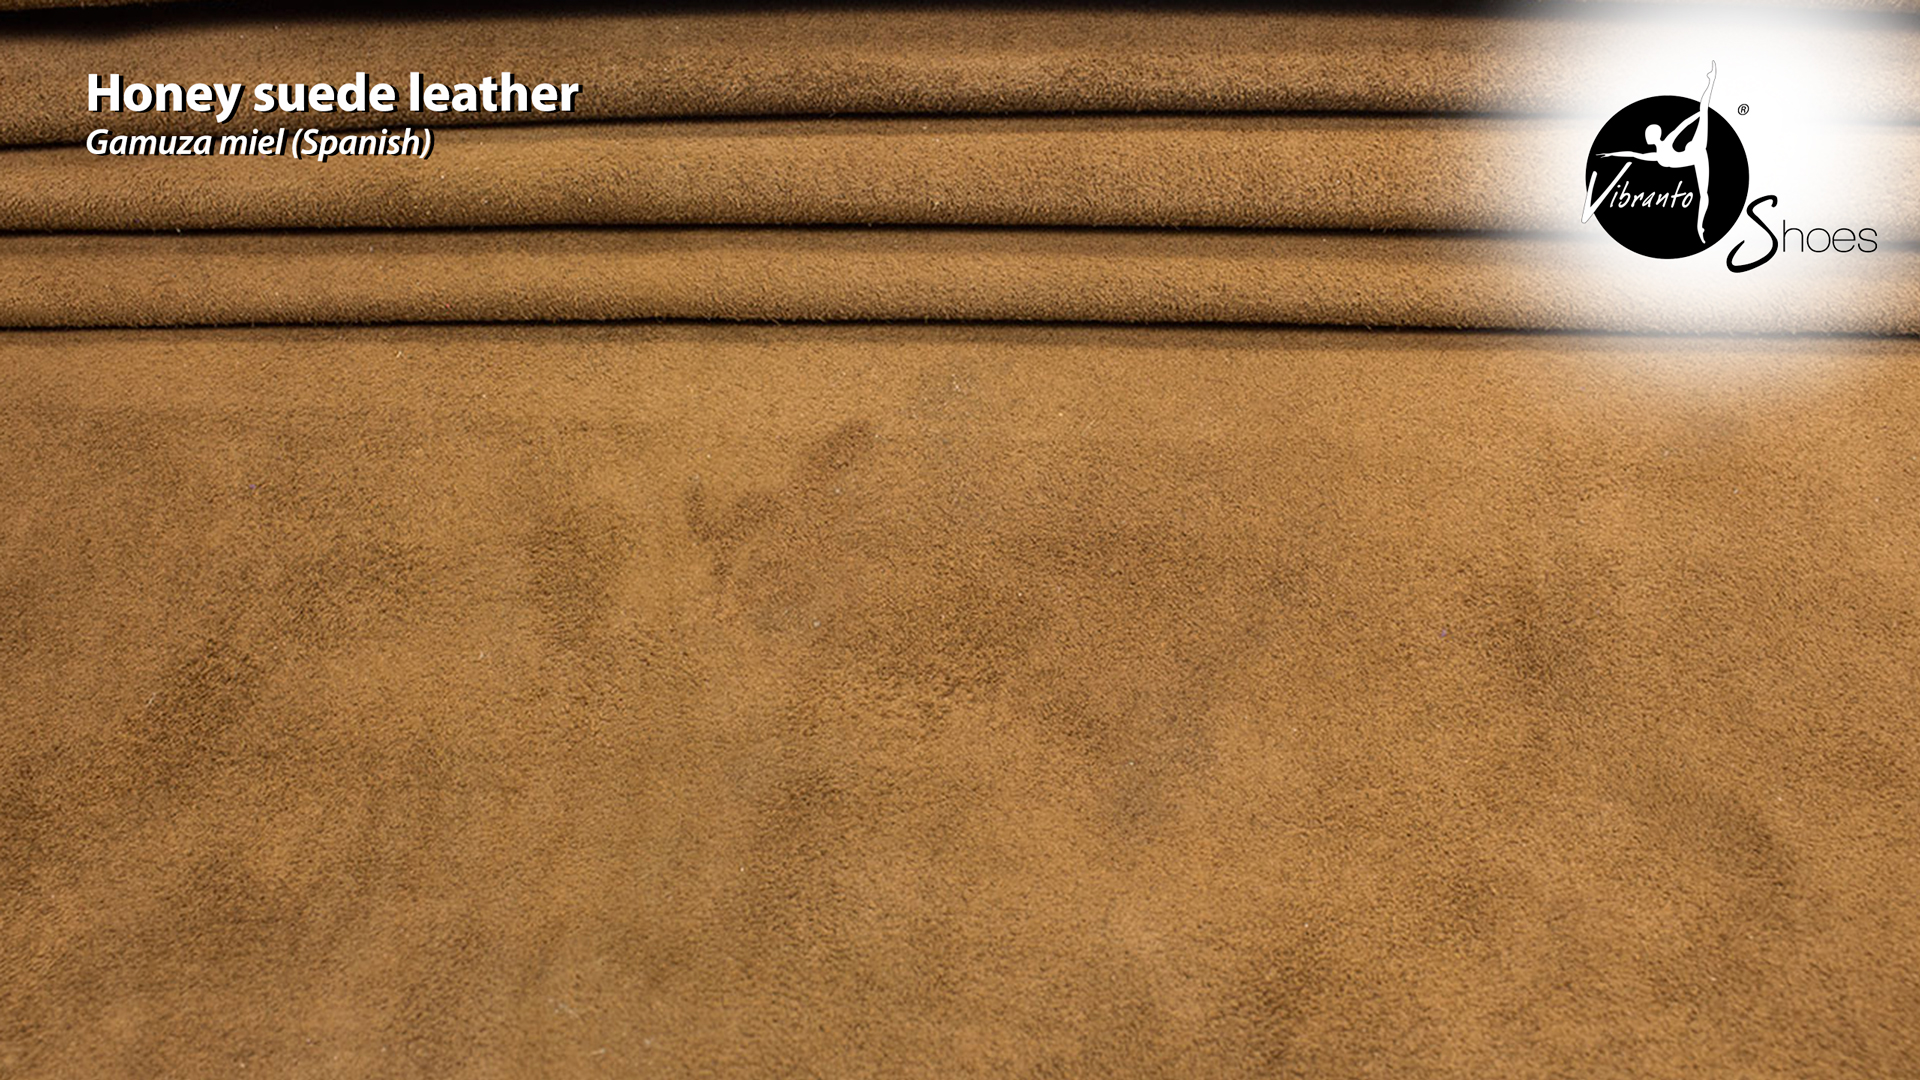 Honey suede leather material Vibranto Shoes